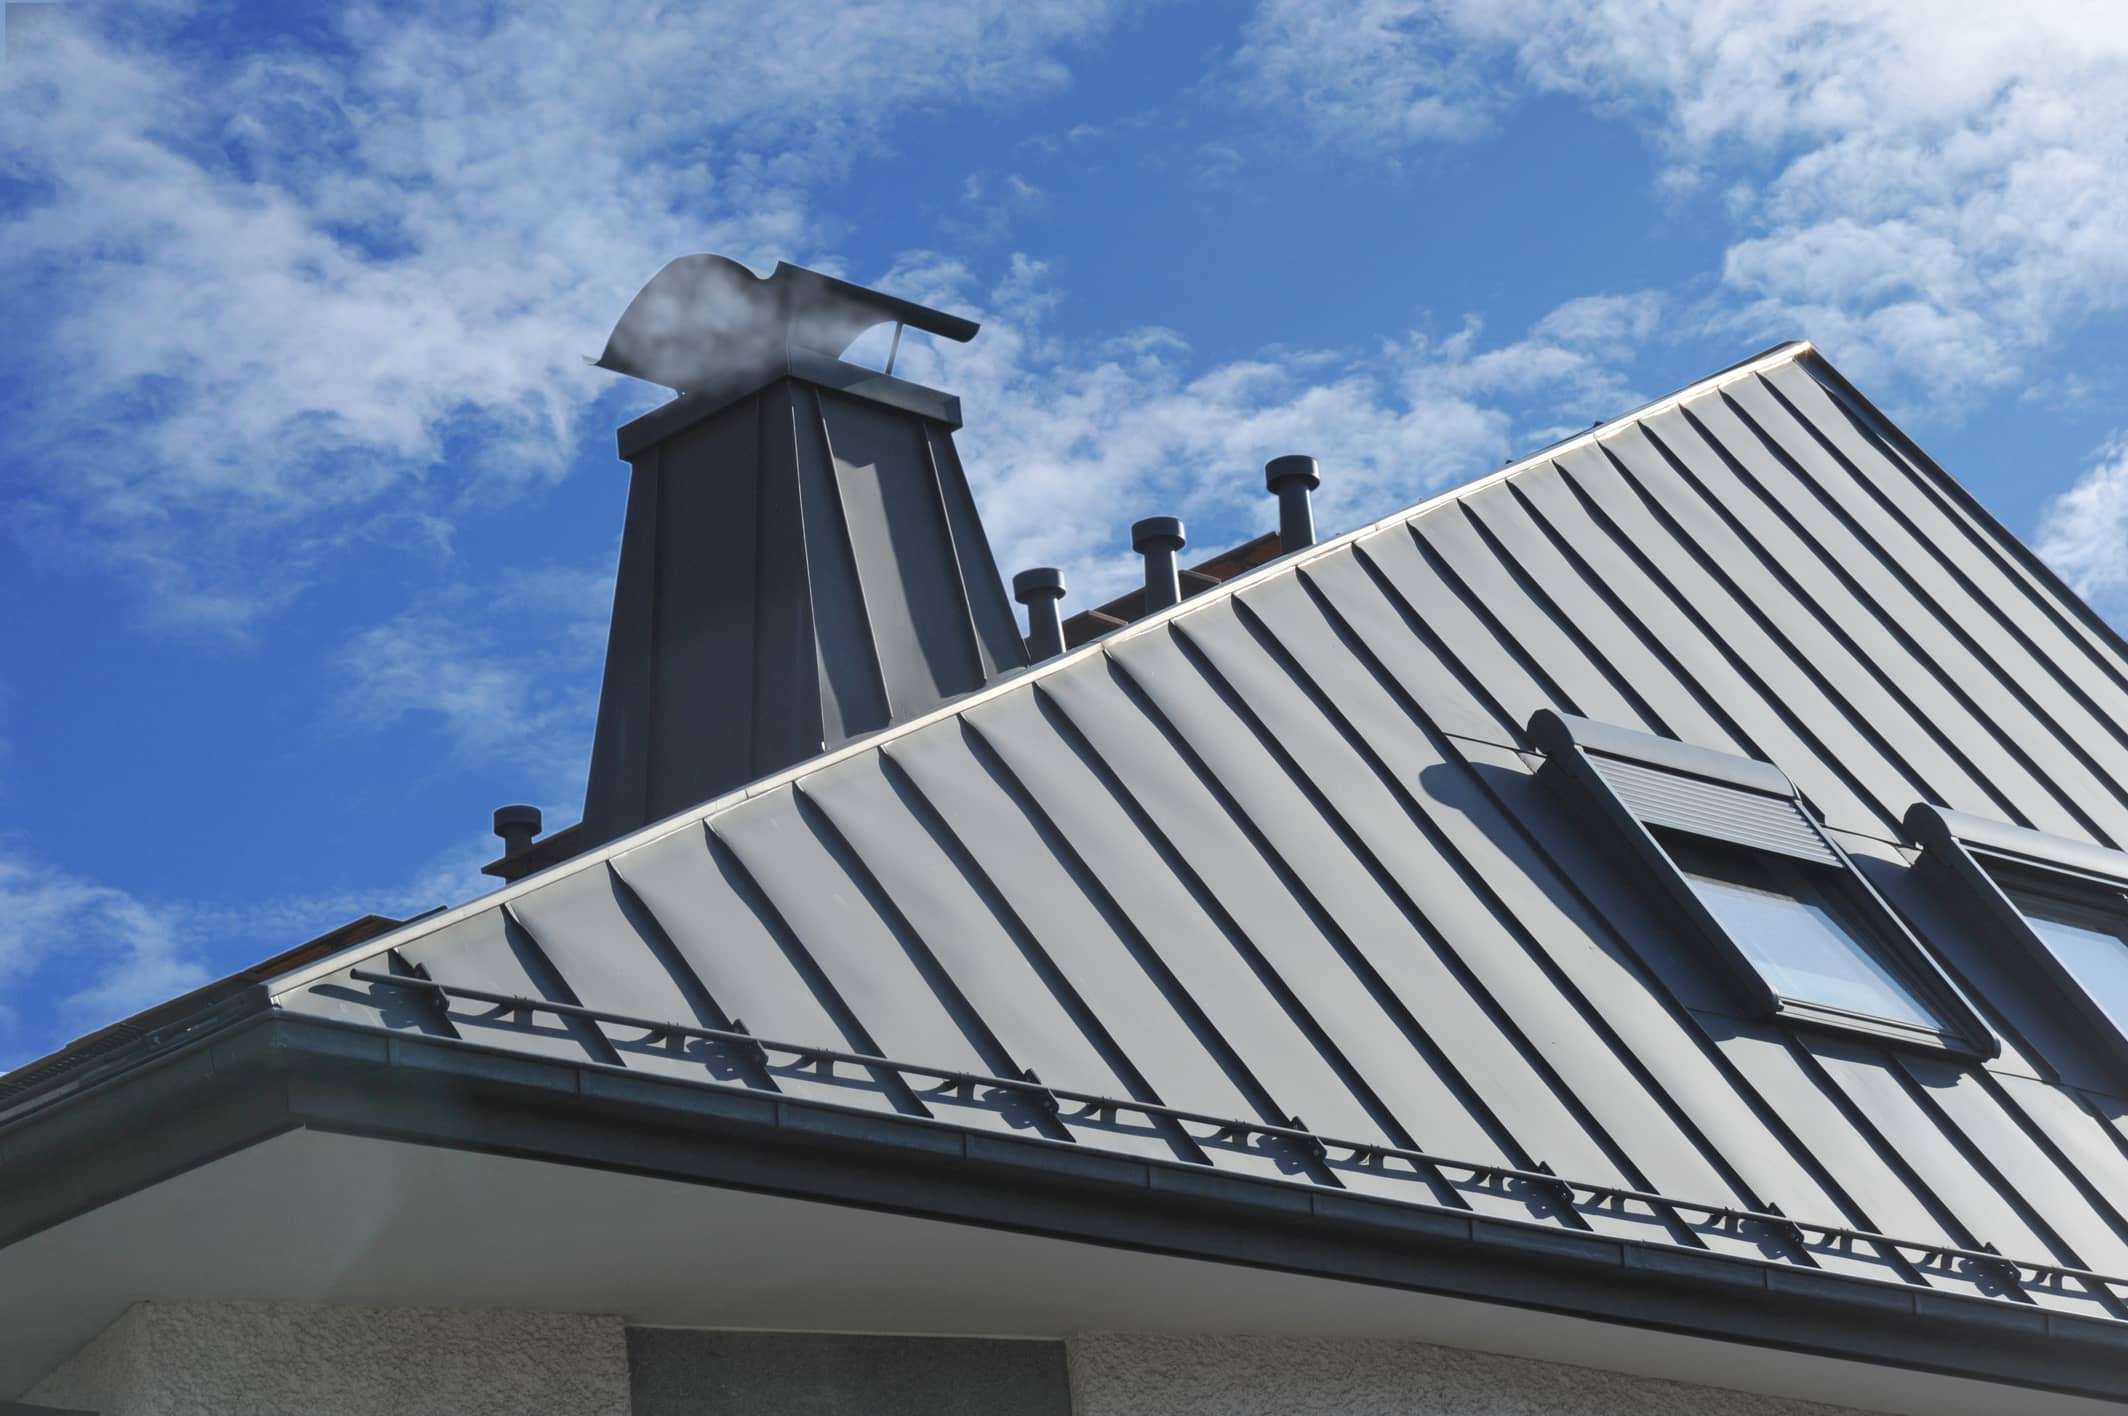 This is an image of a residential roofing with metal roofing and sun roof.